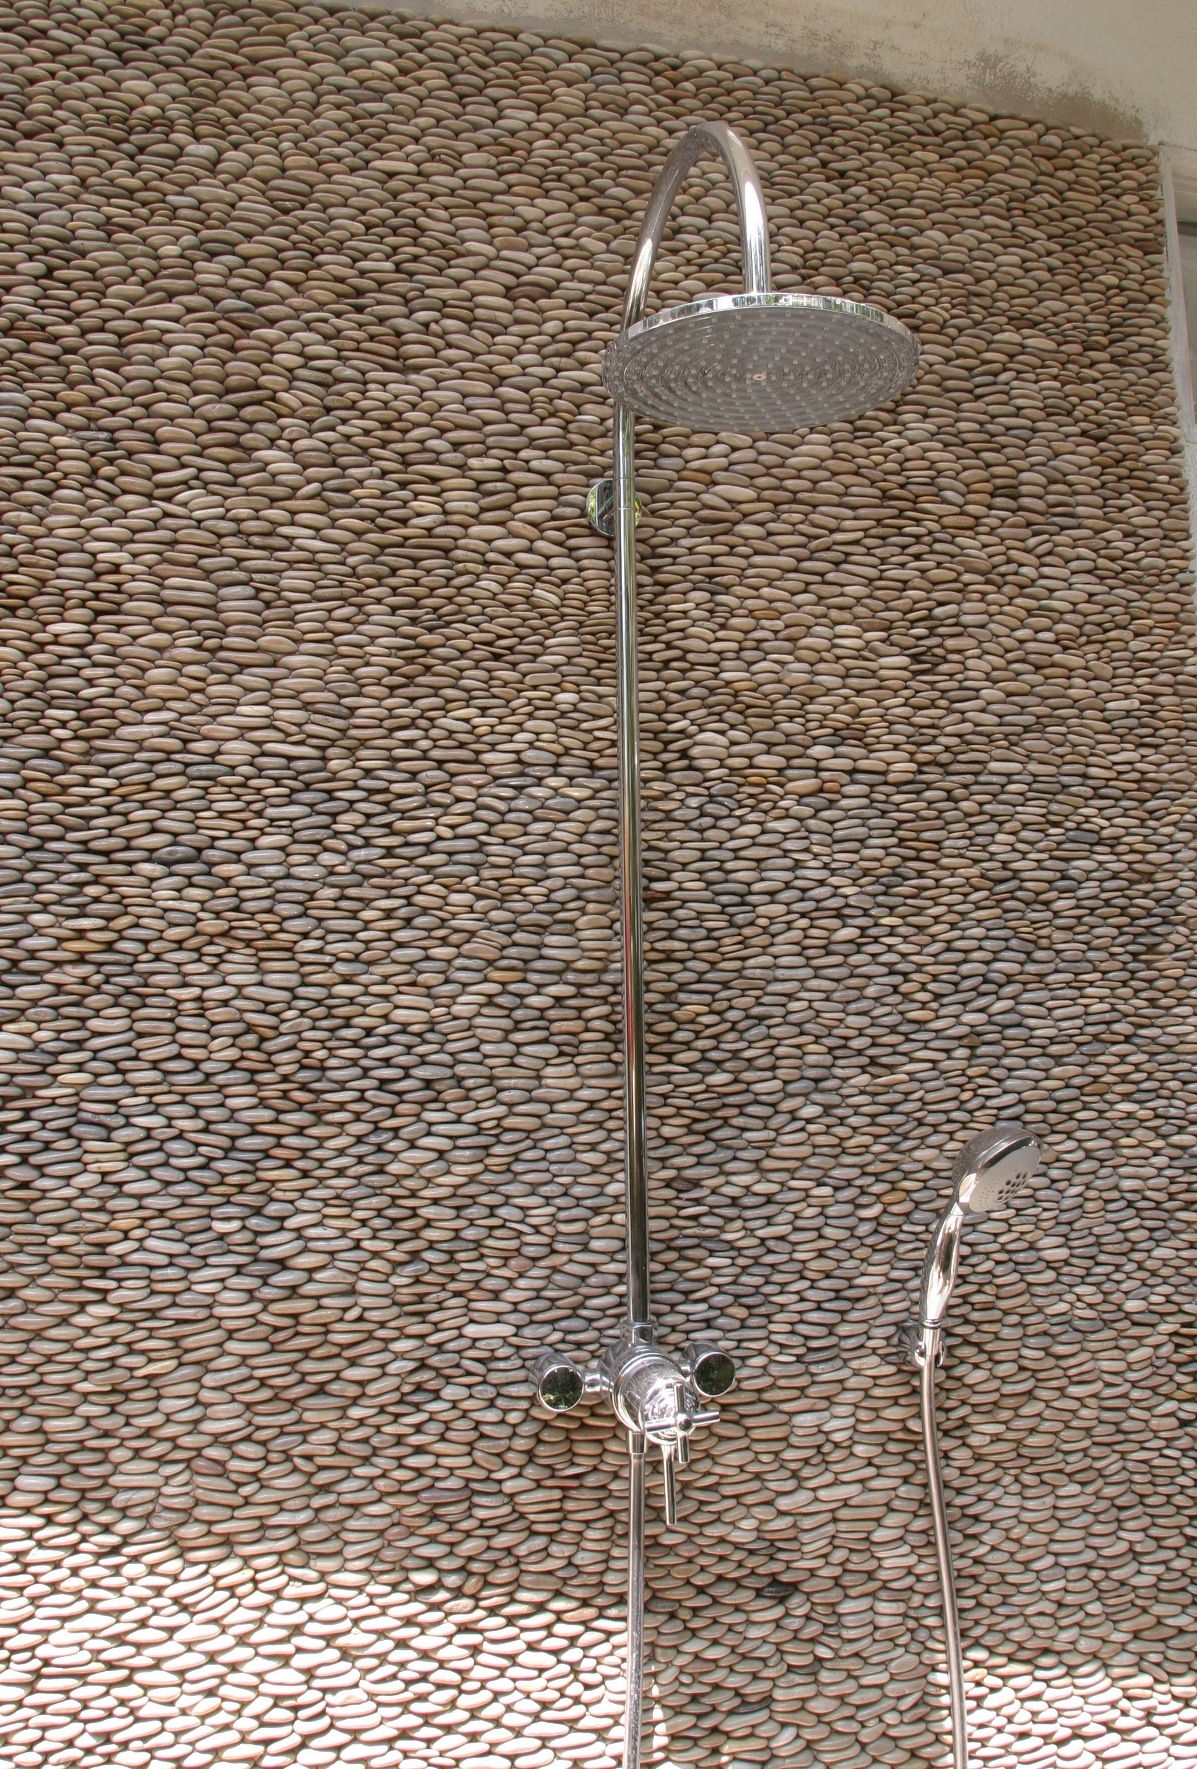 Standing-Pebble-Tile-Java_Shower_2